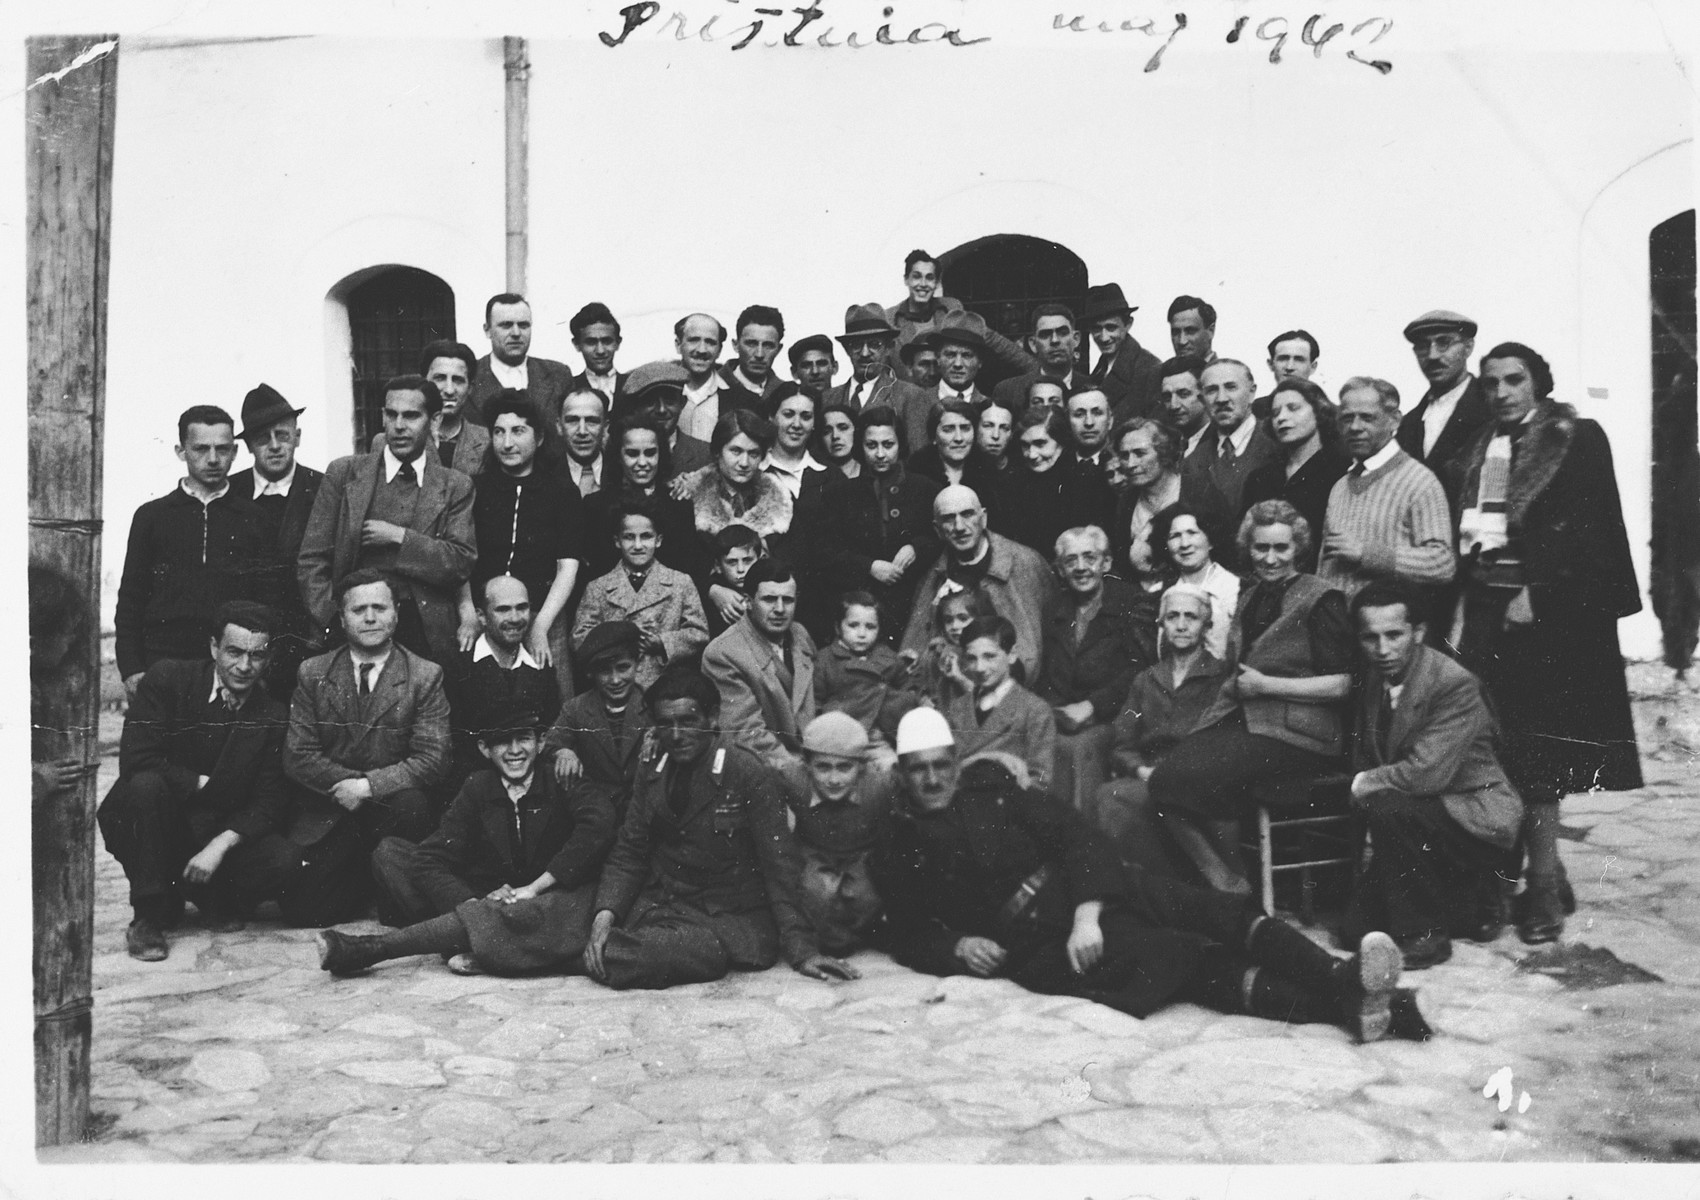 Group portrait of Yugoslavian Jewish refugees who are living in a prison in Italian-occupied Pristina.